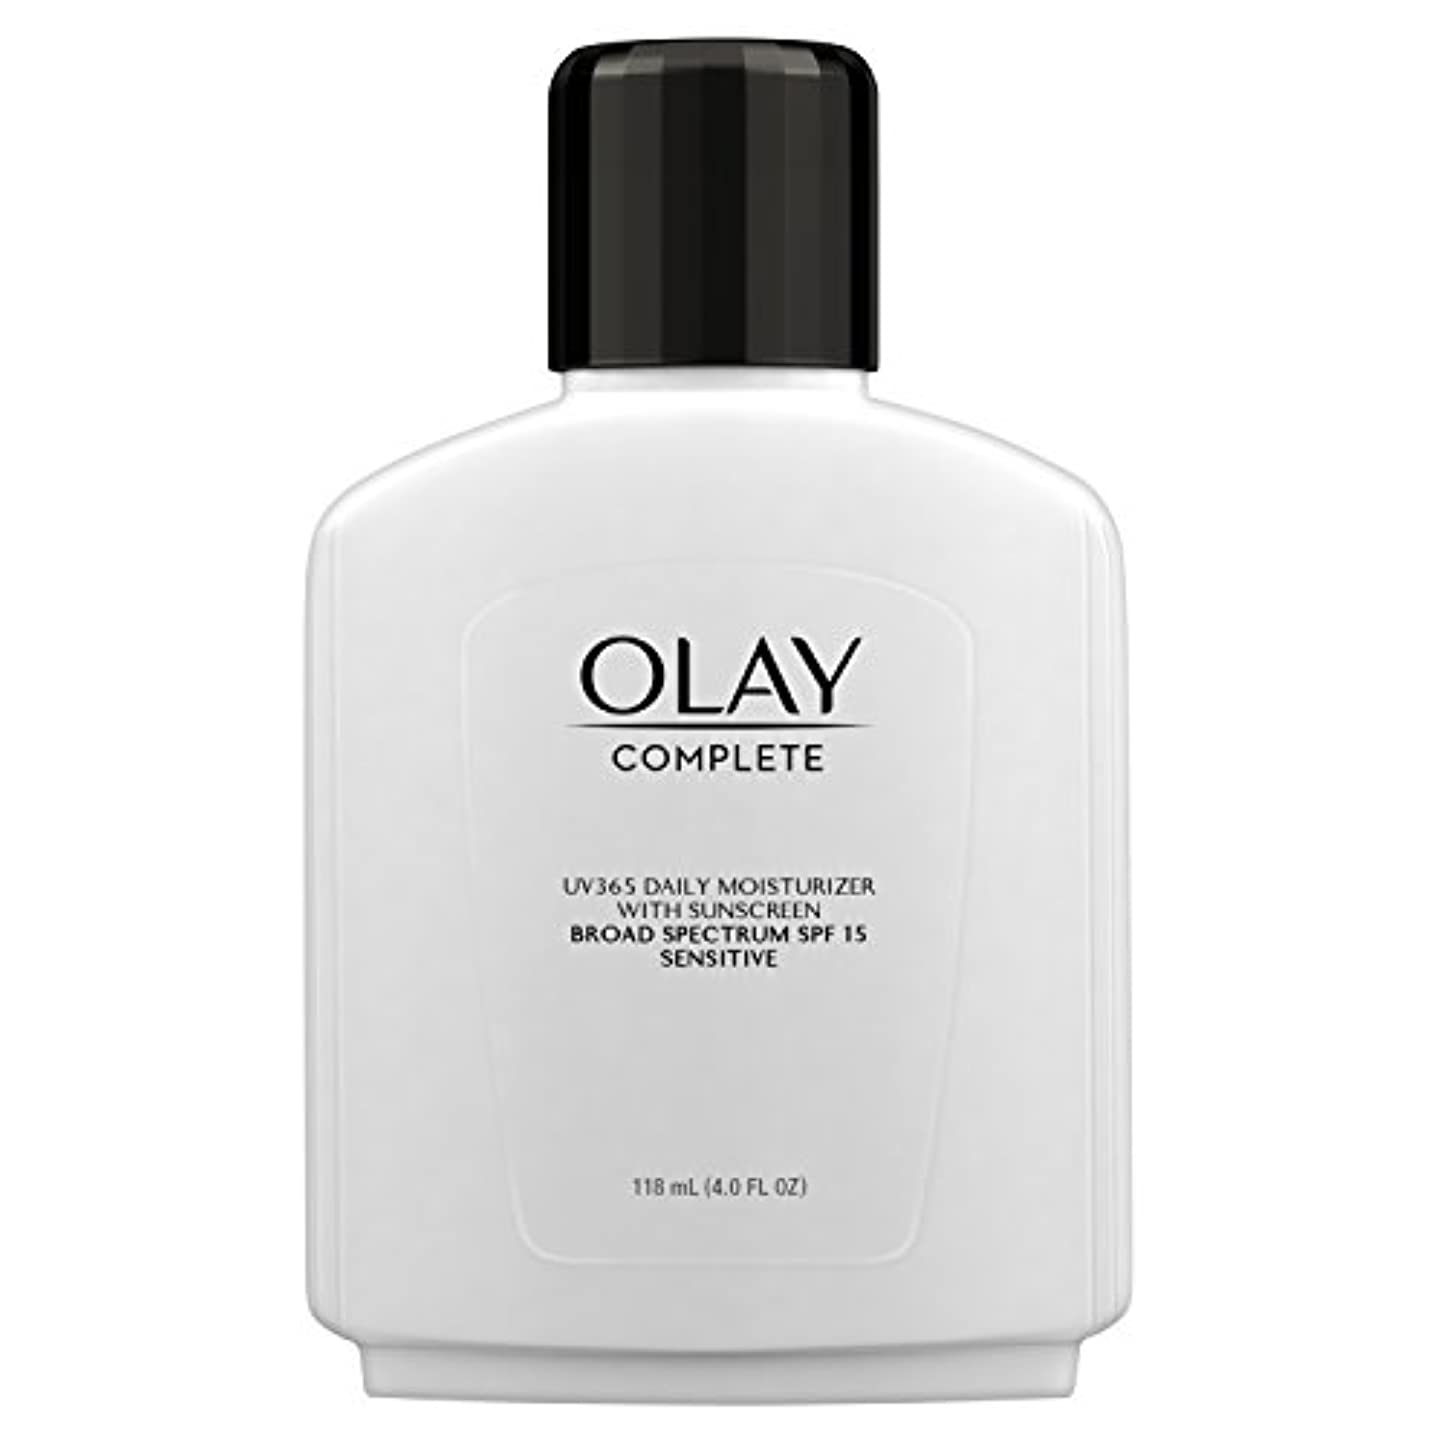 ダブルサーカス途方もないOlay Complete All Day Moisture Lotion UV Defense SPF 15, Sensitive Skin, 4 fl oz (118 ml) (1 pack) (並行輸入品)